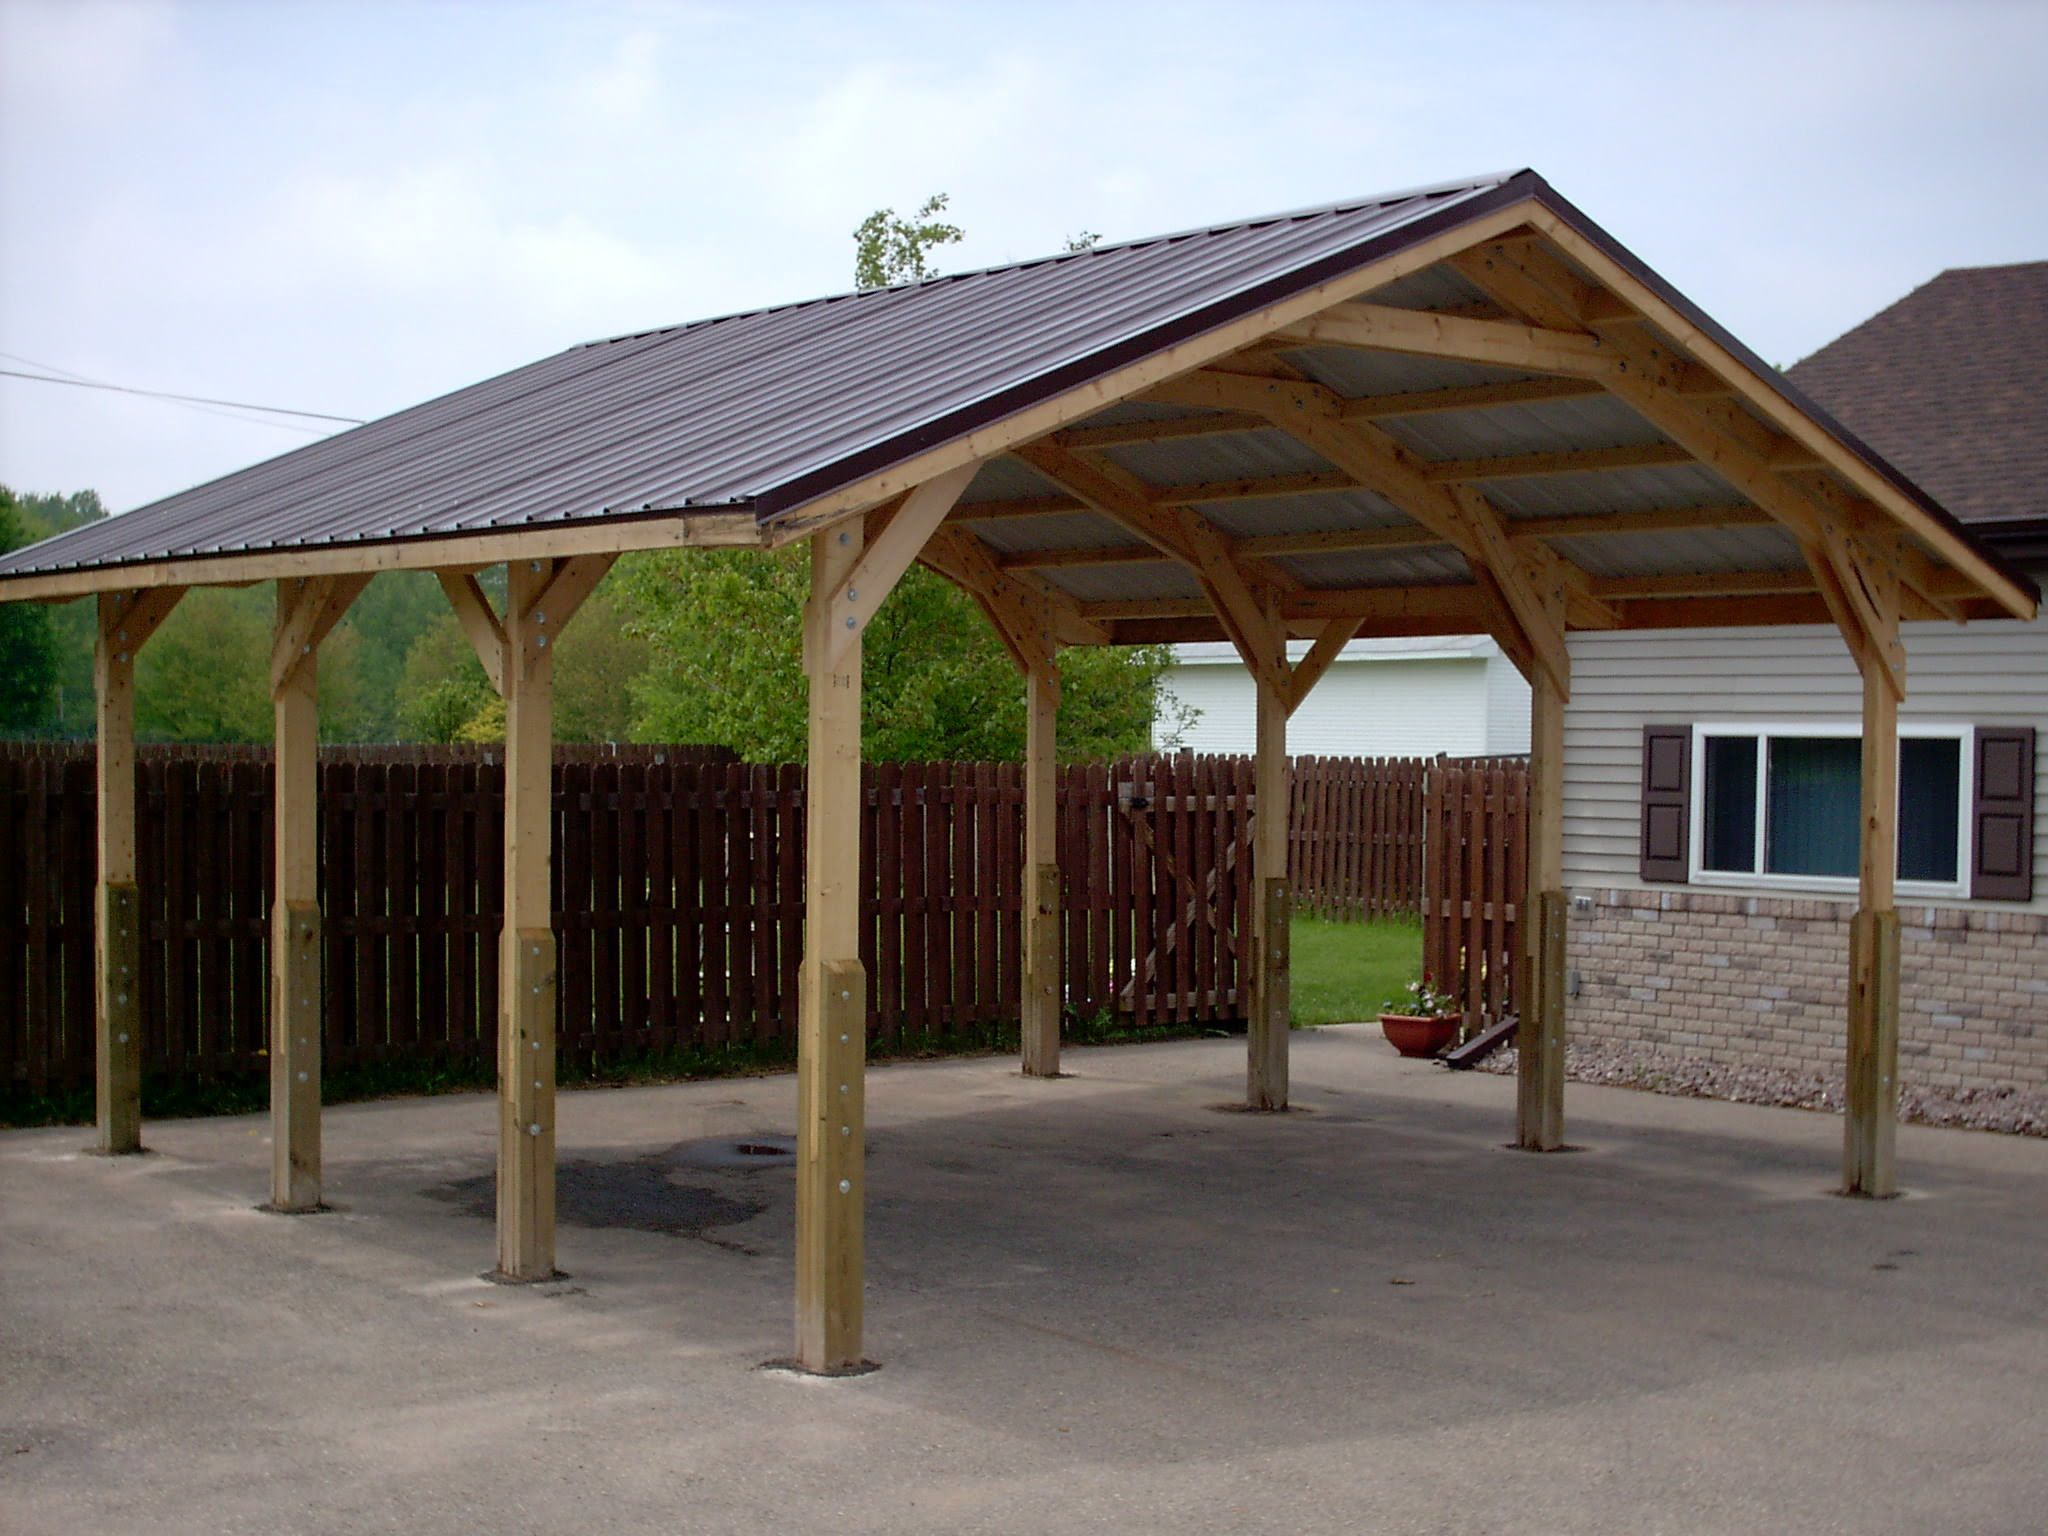 Car port shawanocarport wayneofbowler car ports for Carport garages